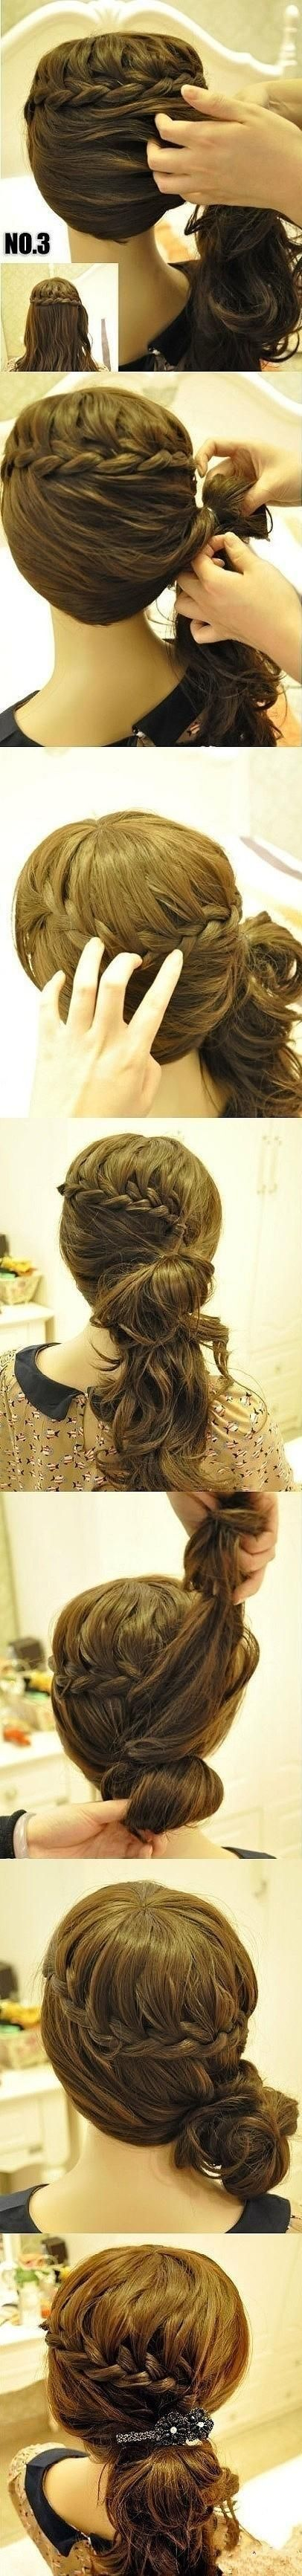 Love this hairstyleium thinking of doing it for the winter ball